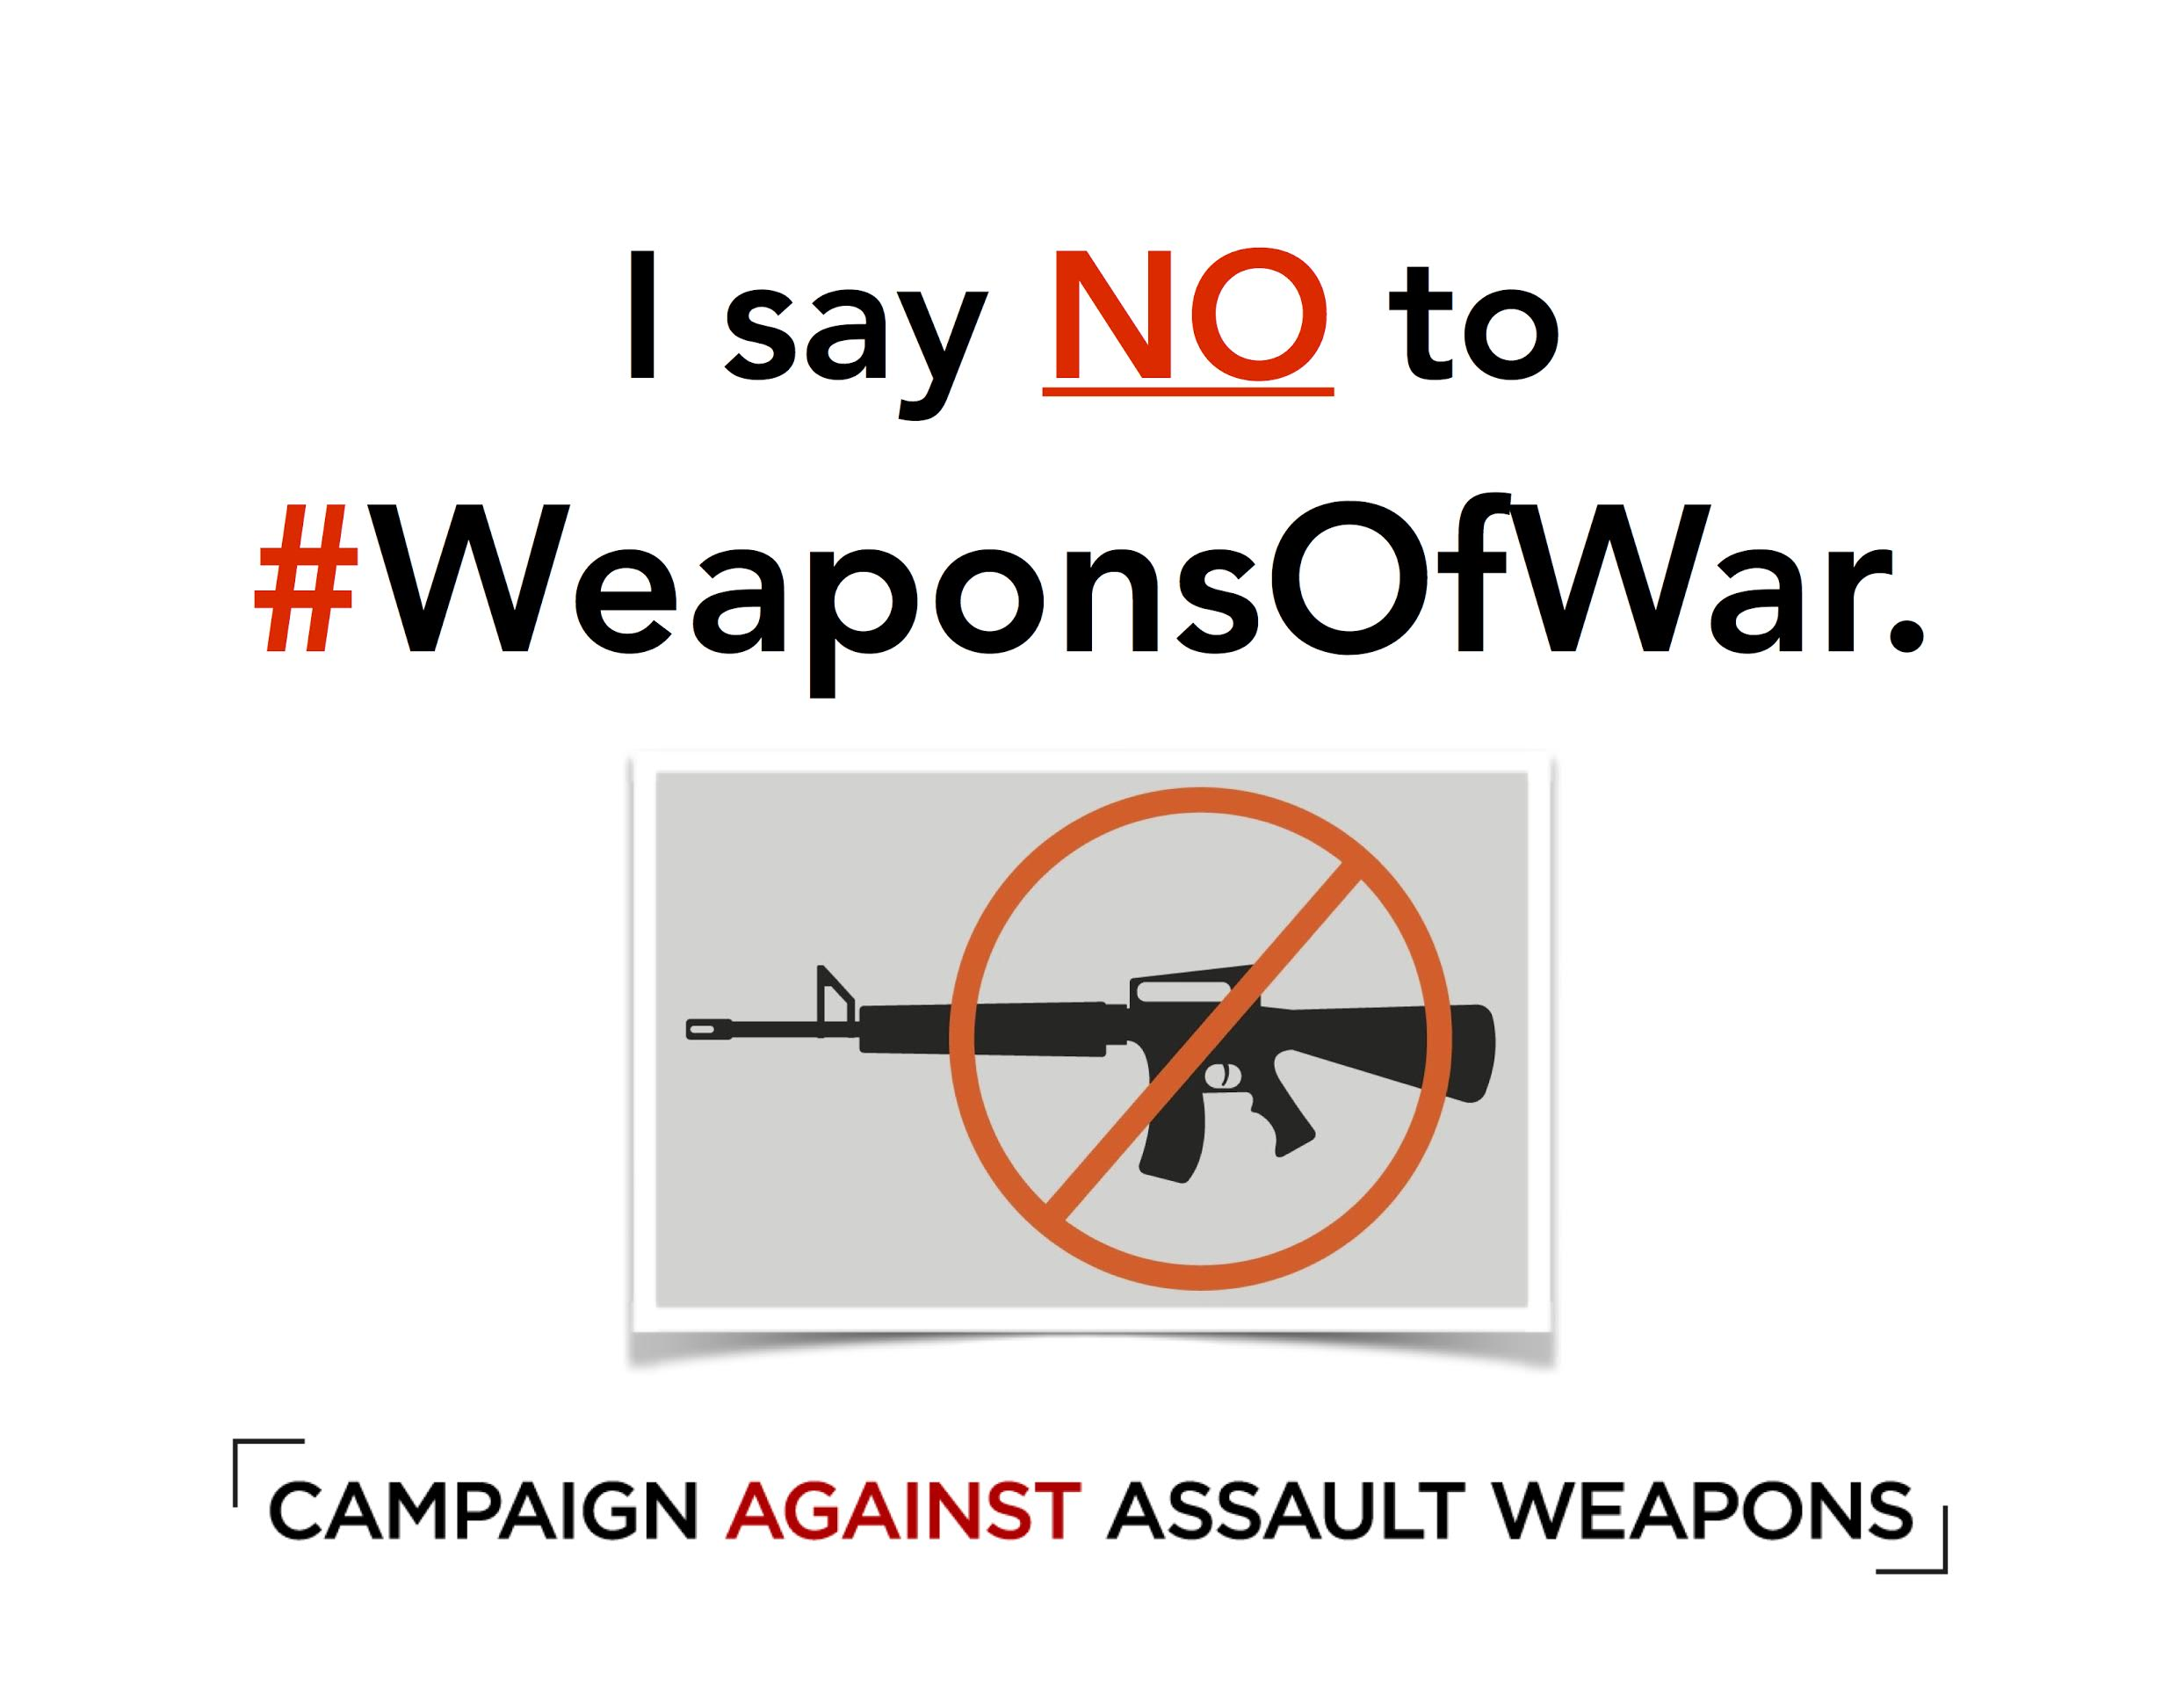 Say NO to #WeaponsOfWar by signing the #CampaignAgainstAssaultWeapons petition! - PETITION BACKGROUND: Thoughts and prayers are not enough. Because Americans deserve a strong response from the federal government, 290+ gun violence prevention groups, chapters and allies have joined the Campaign Against Assault Weapons to ban #WeaponsOfWar to keep our families and communities safe. We invite you to join our campaign by signing our coalition petition.